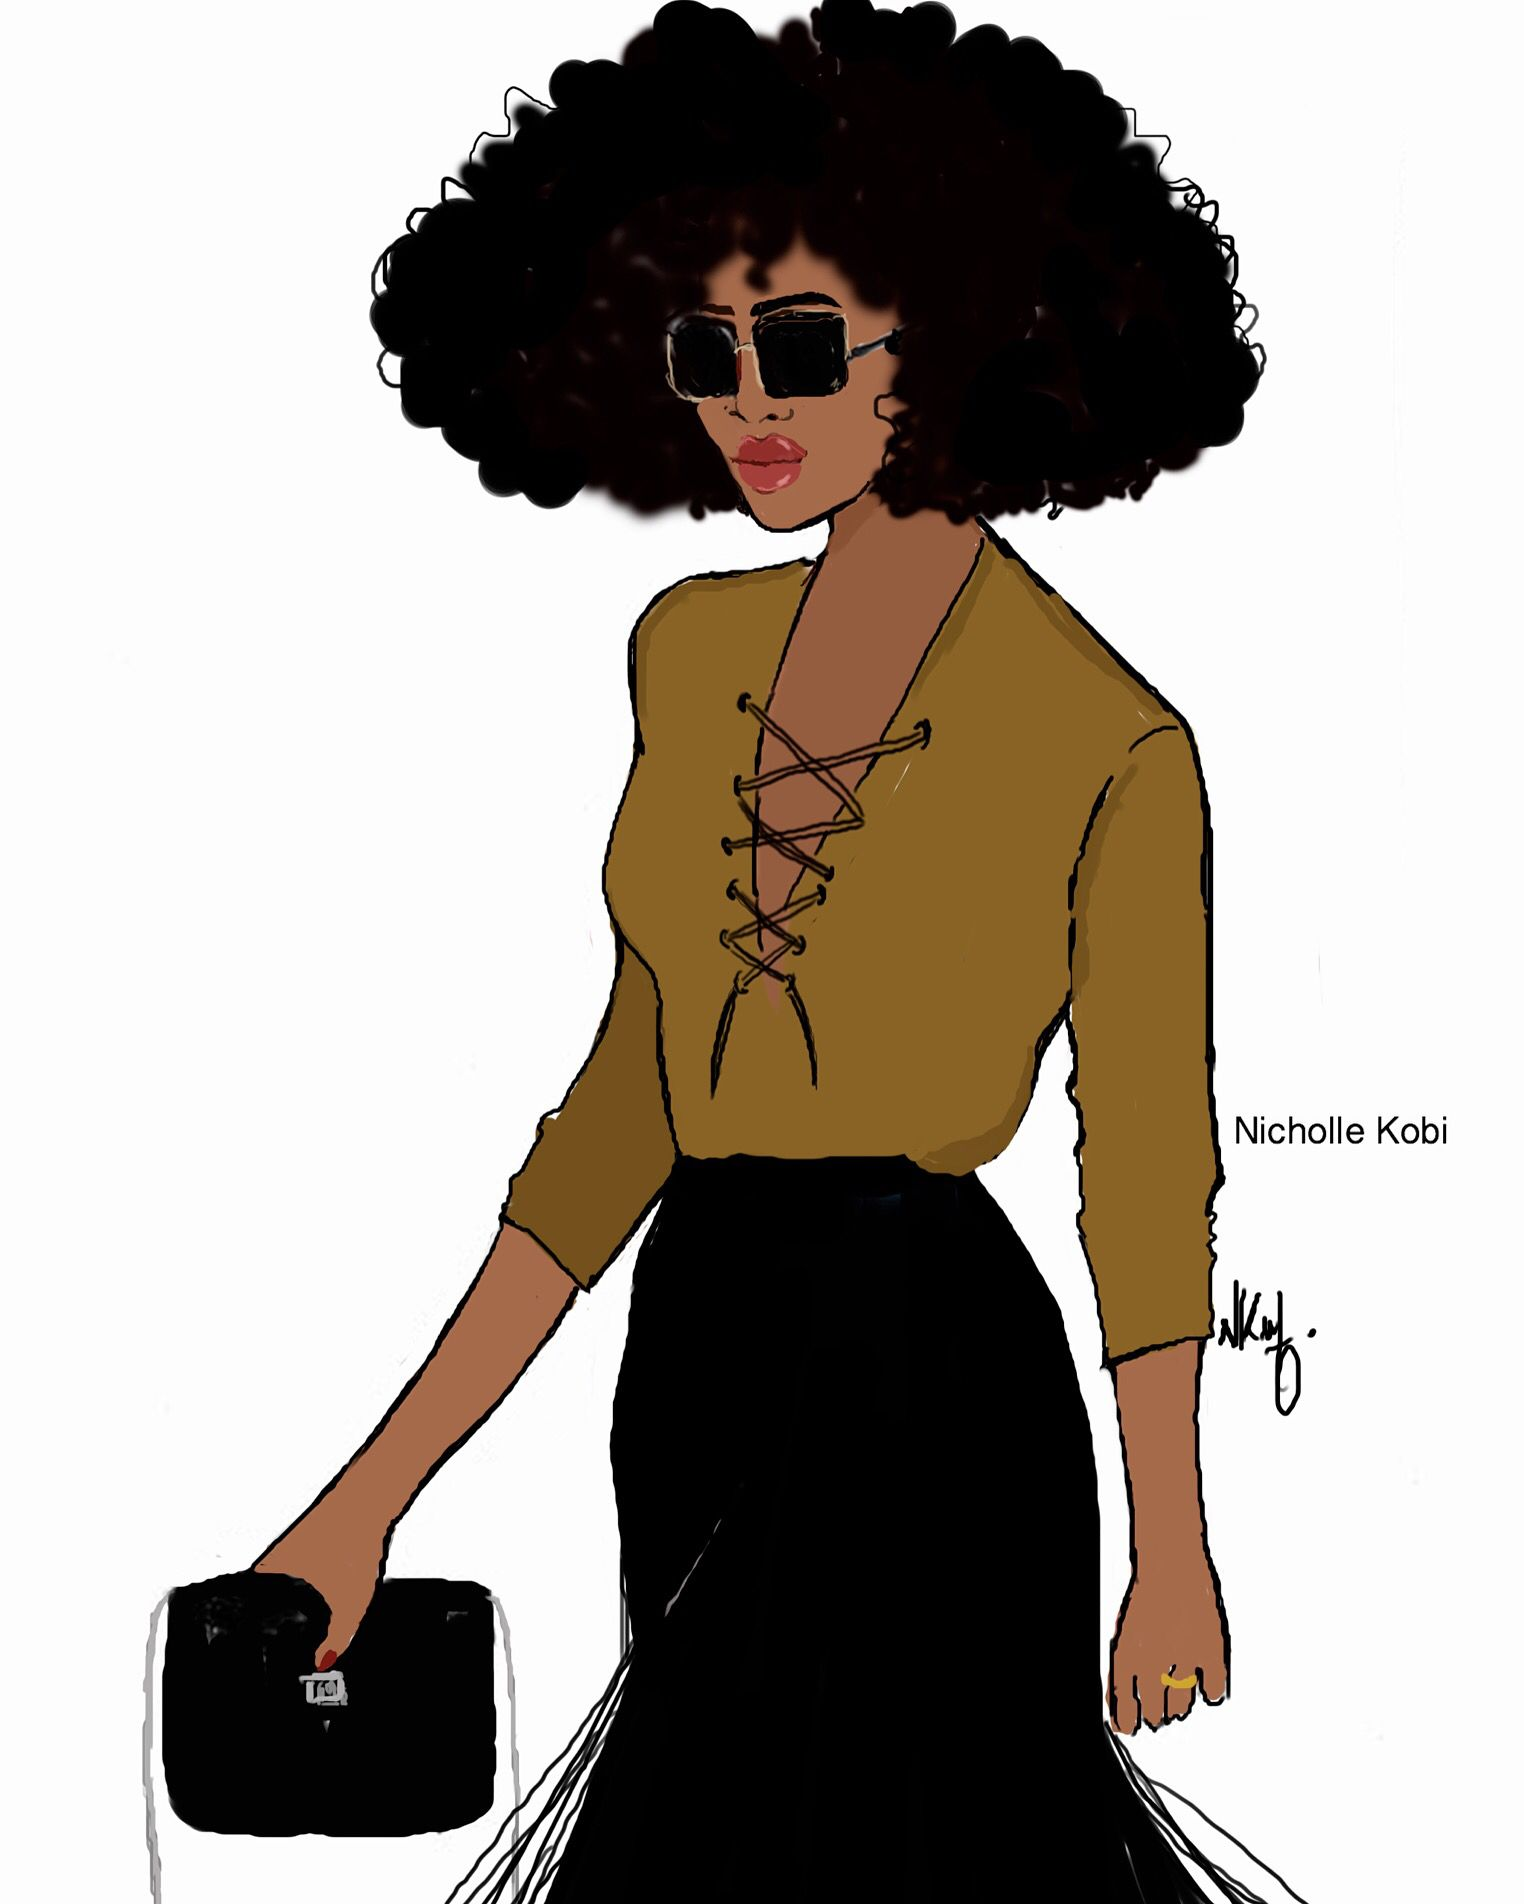 Fro Girl With Attitude. Nicholle Kobi Illustrations